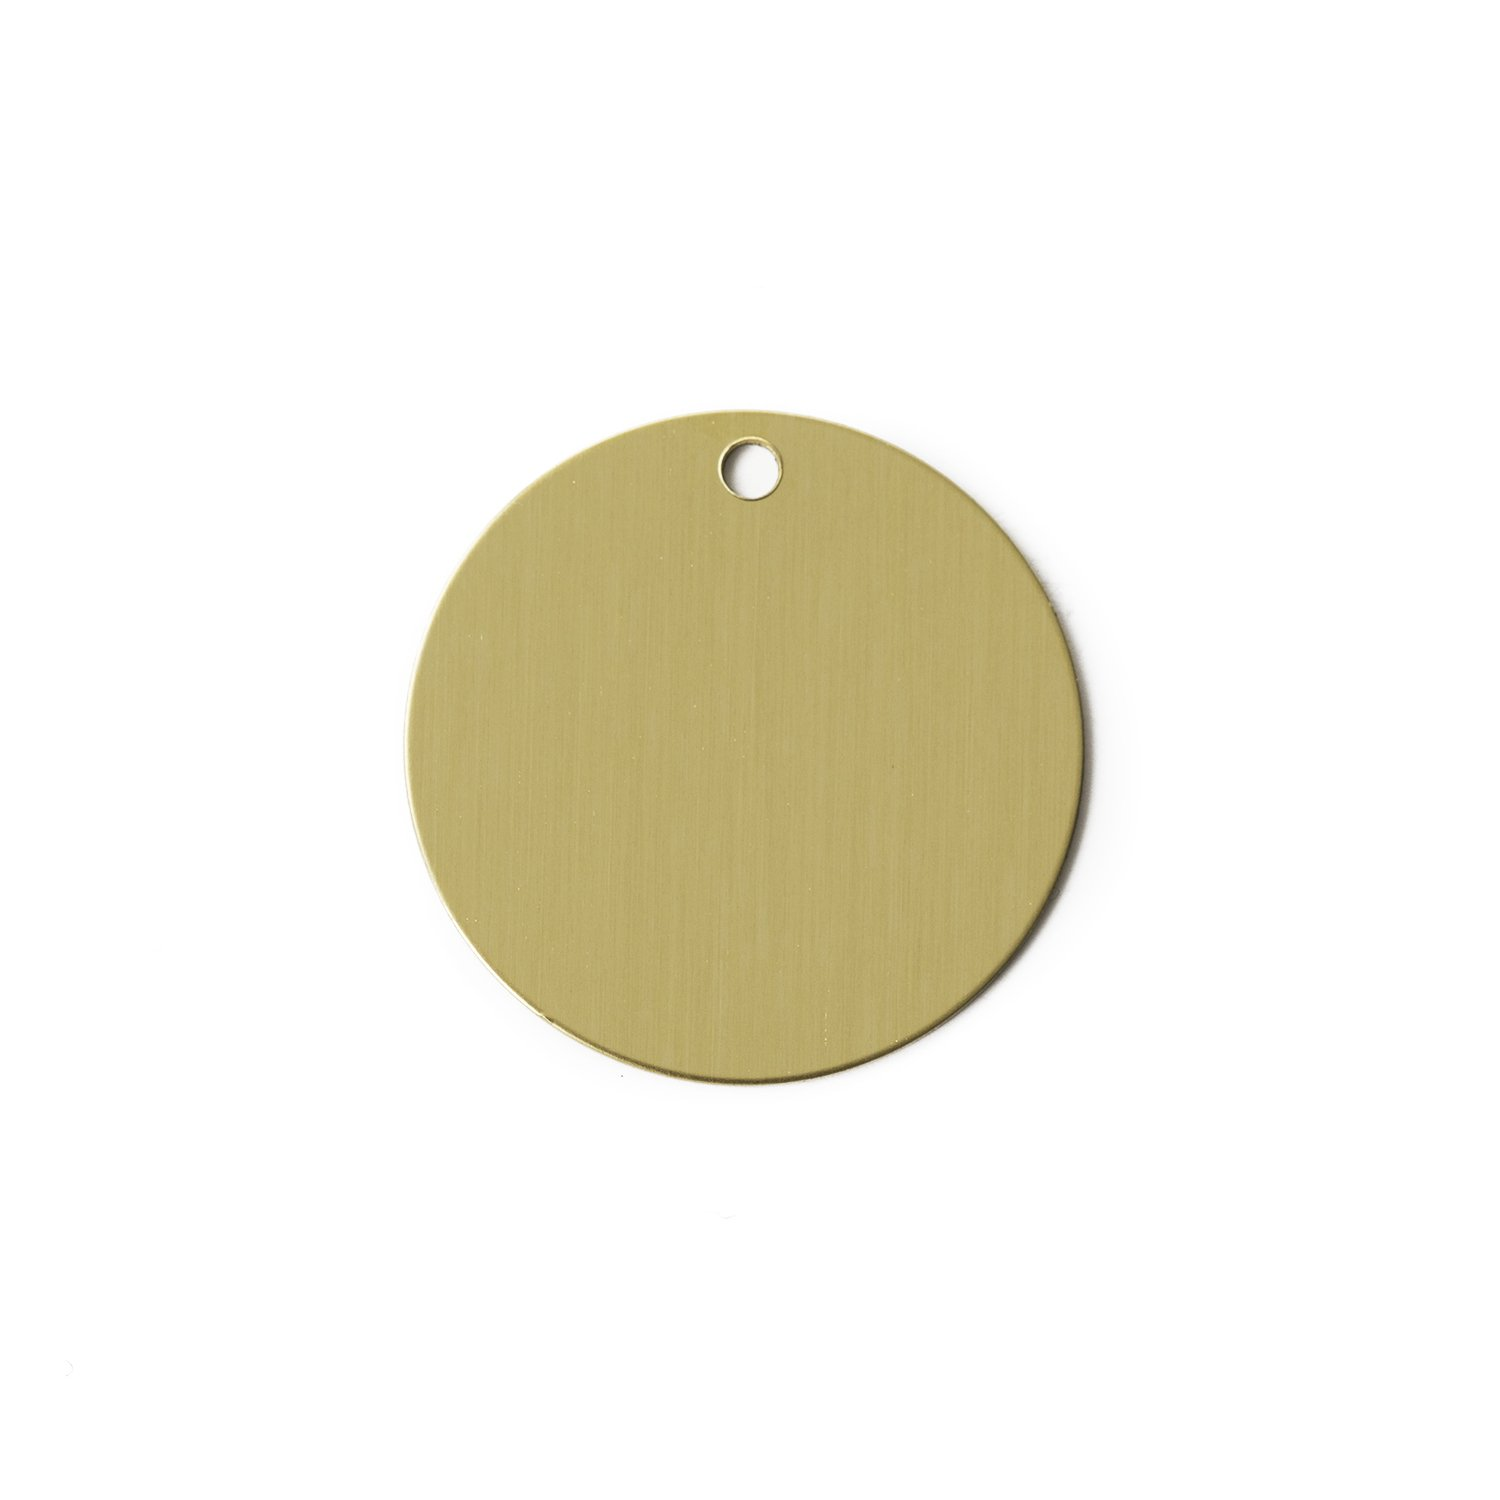 RMP Stamping Blanks, 1 Round With Hole, .032 (20 Gauge) Brass - 20 Pack 1 Round With Hole Rose Metal Products